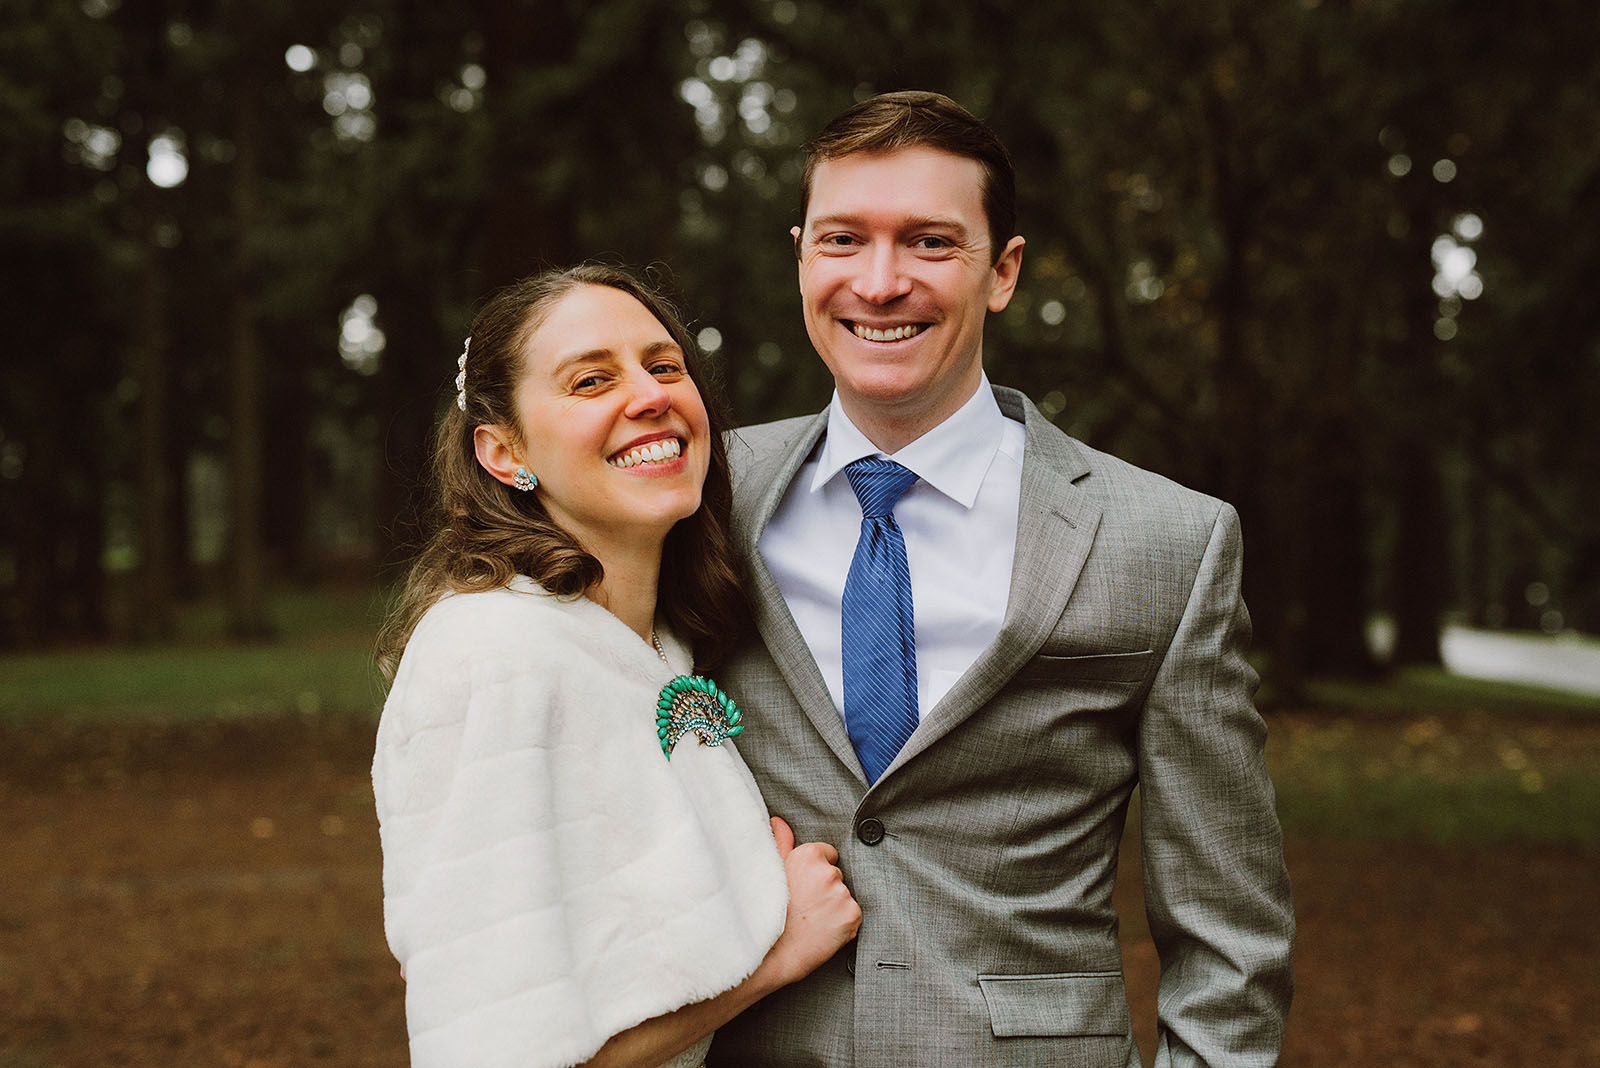 Portraits of Bride and Groom at Mt. Tabor Park